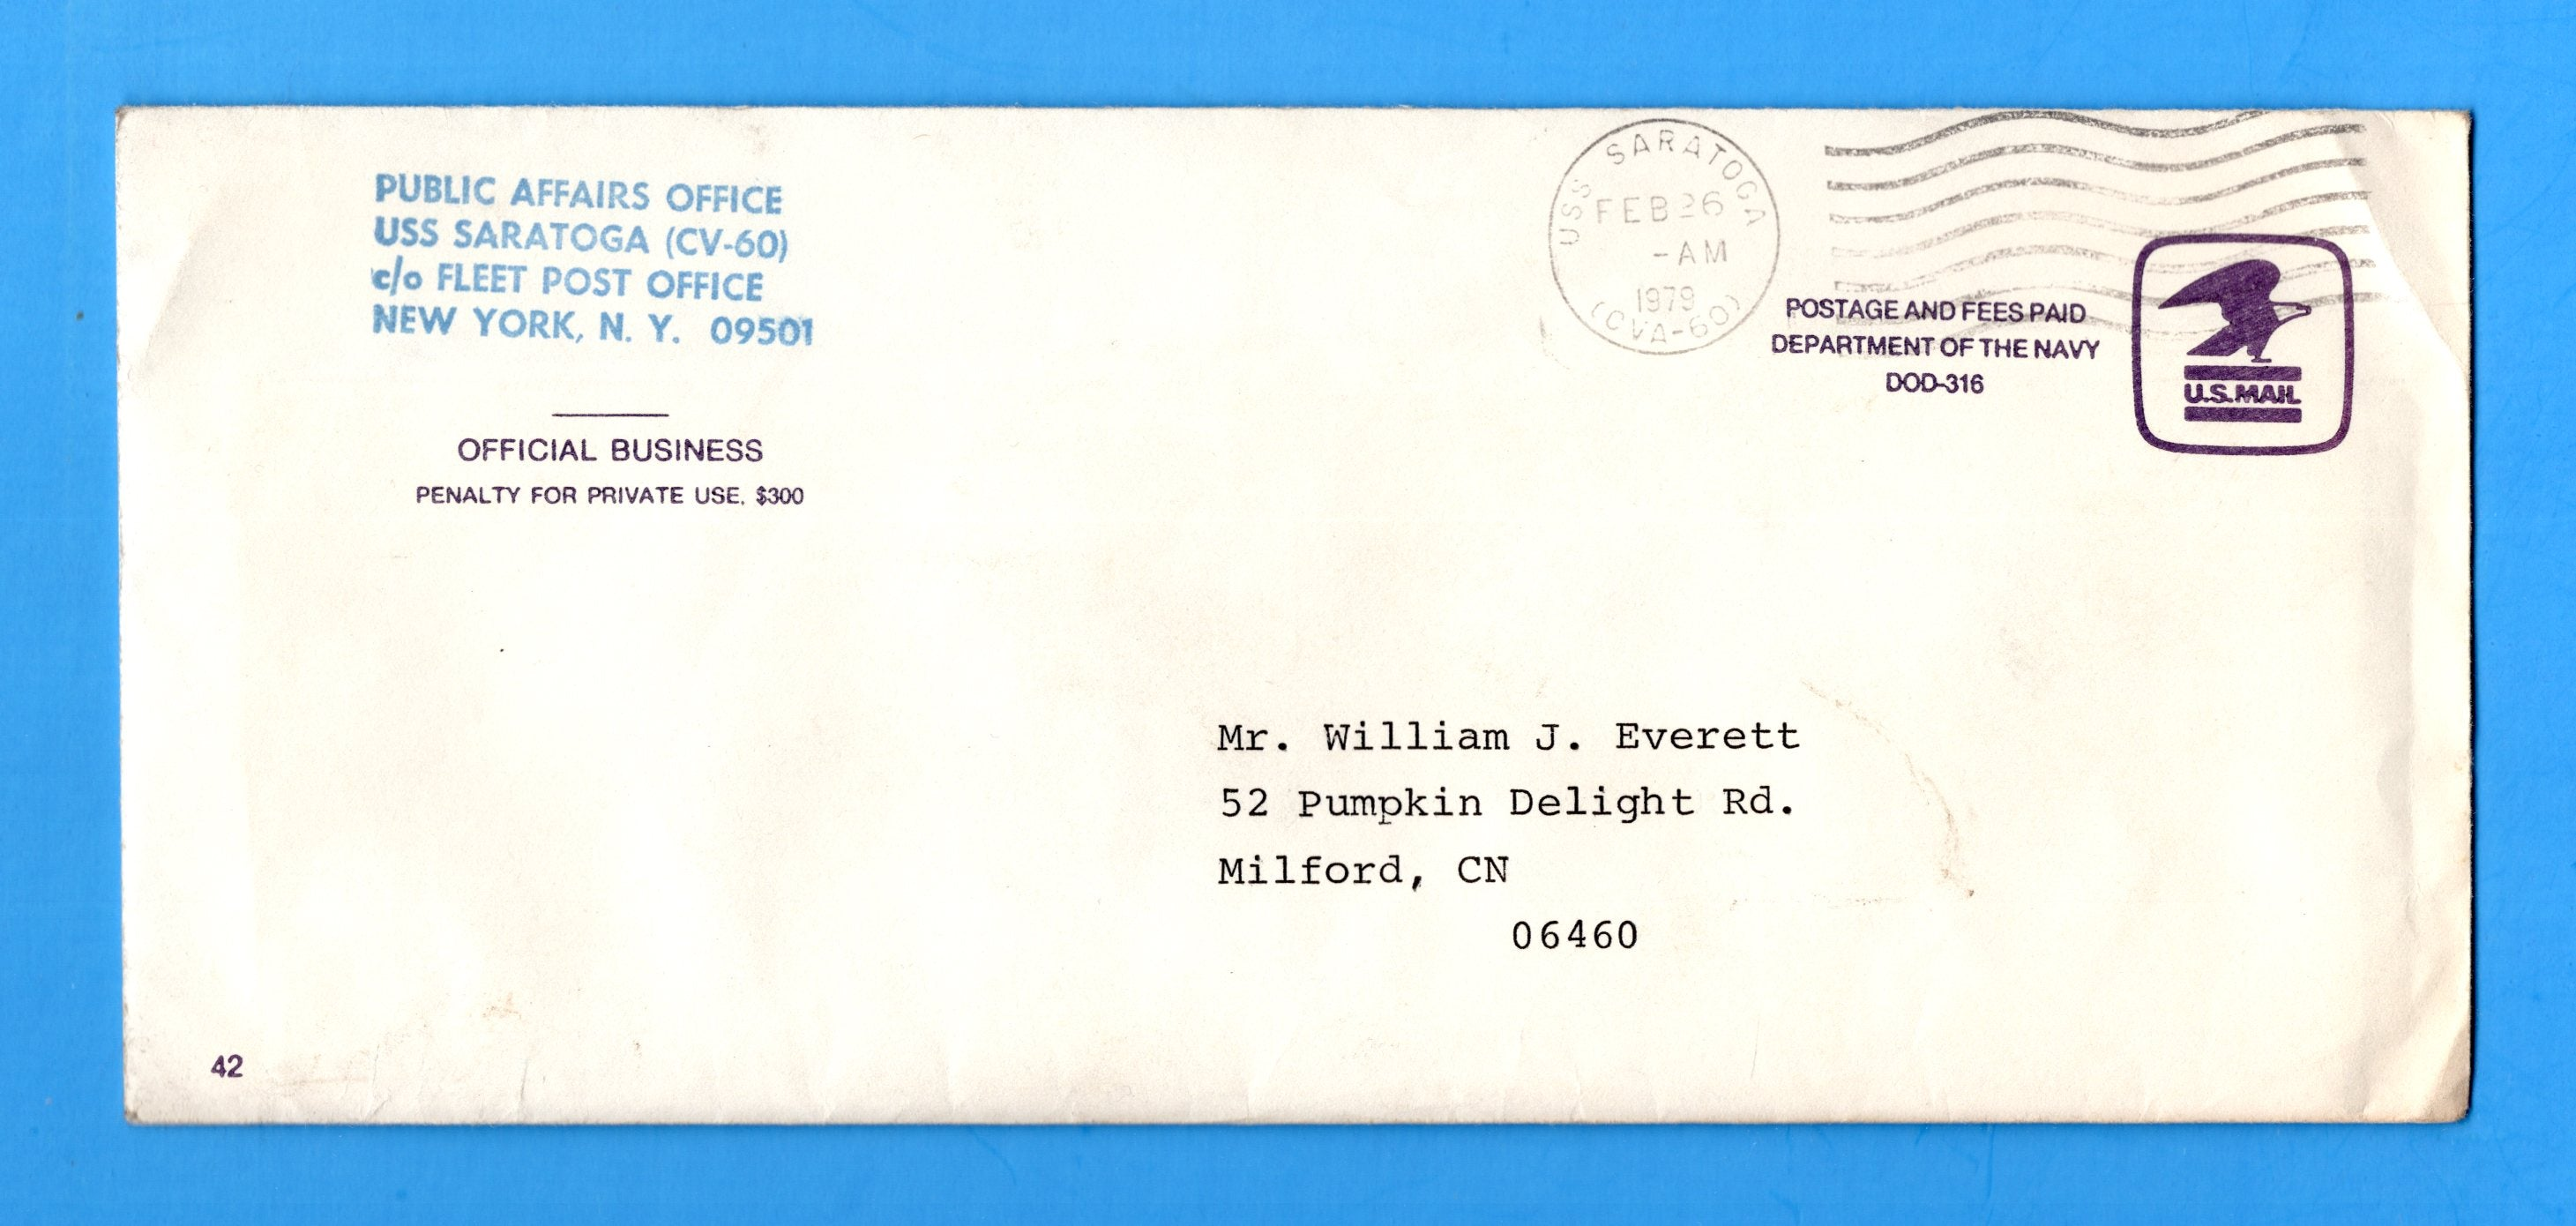 USS Saratoga CV-60 Navy Department Official Mail February 26, 1979